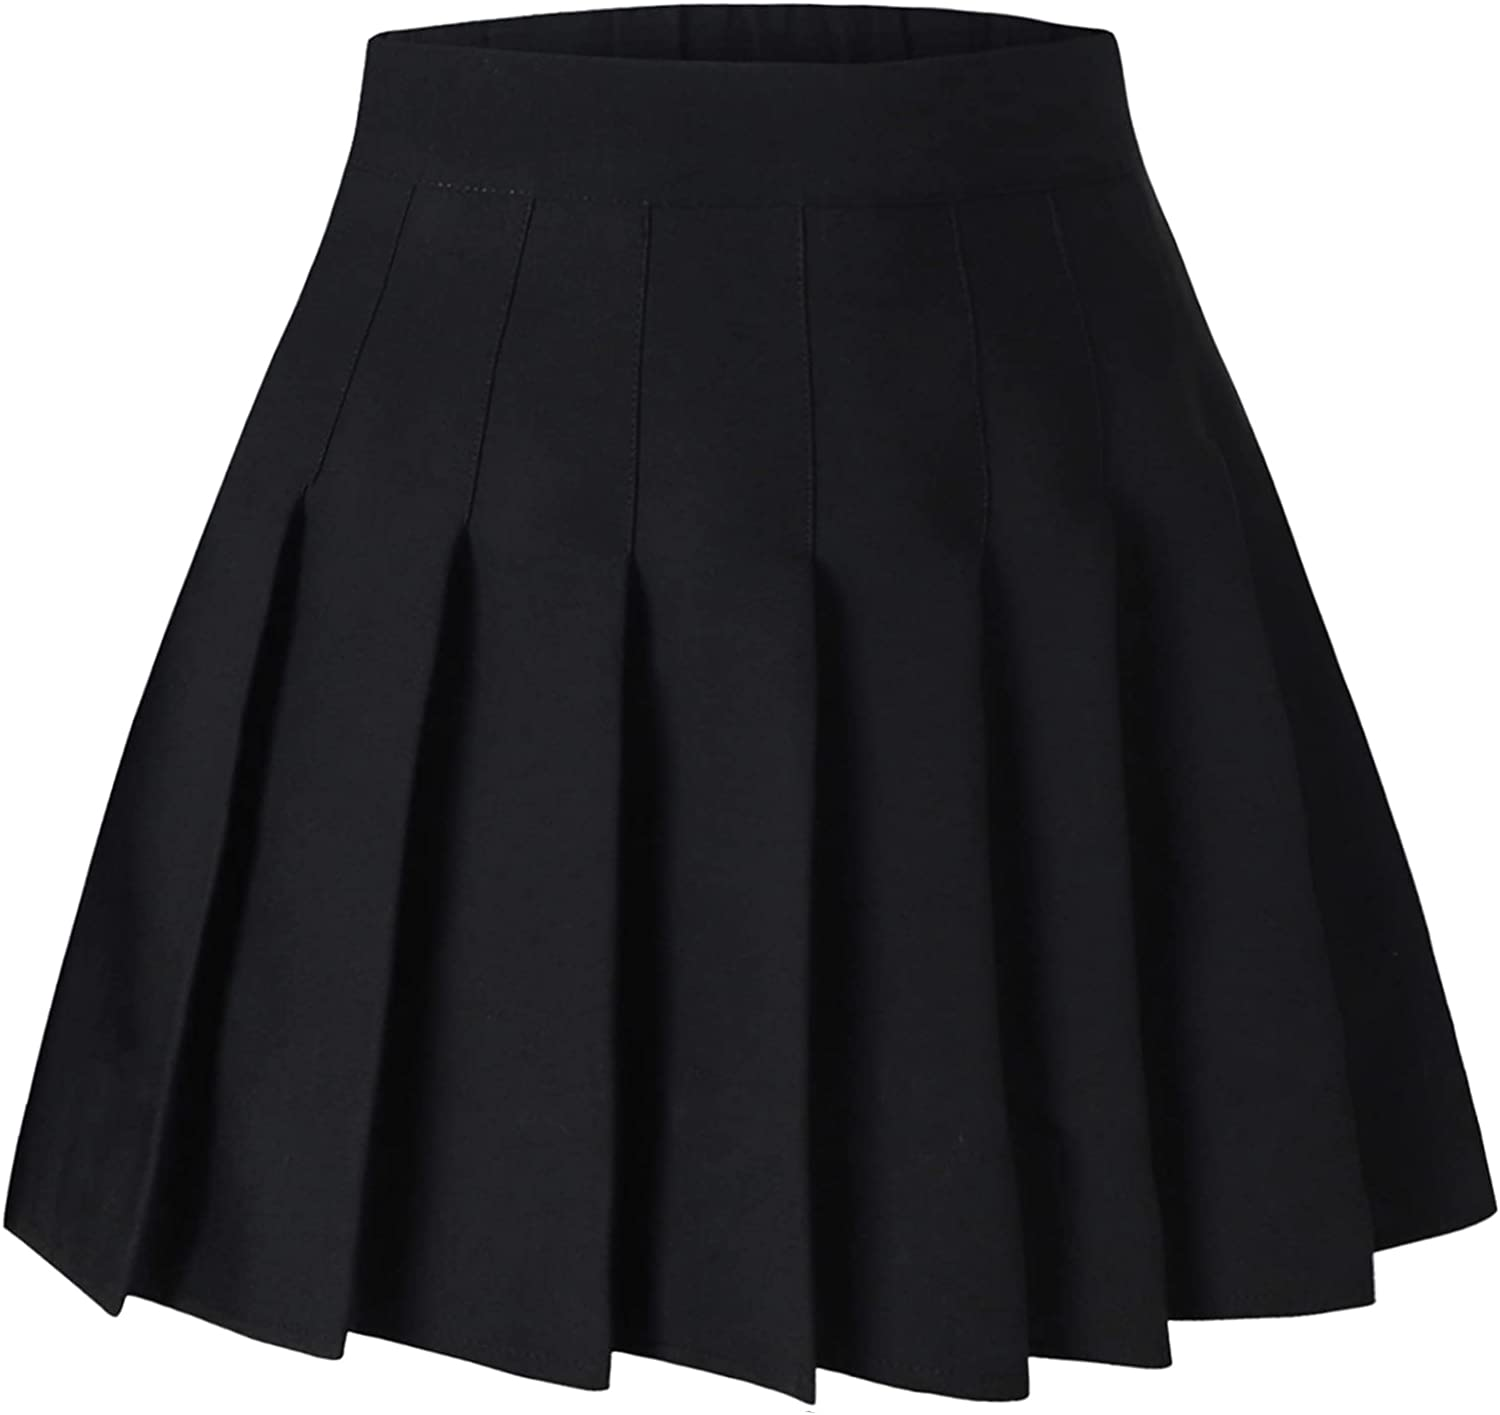 SANGTREE Girls Women's Pleated Skirt Comfy Band Stretchy 2 with Sale Max 75% OFF item